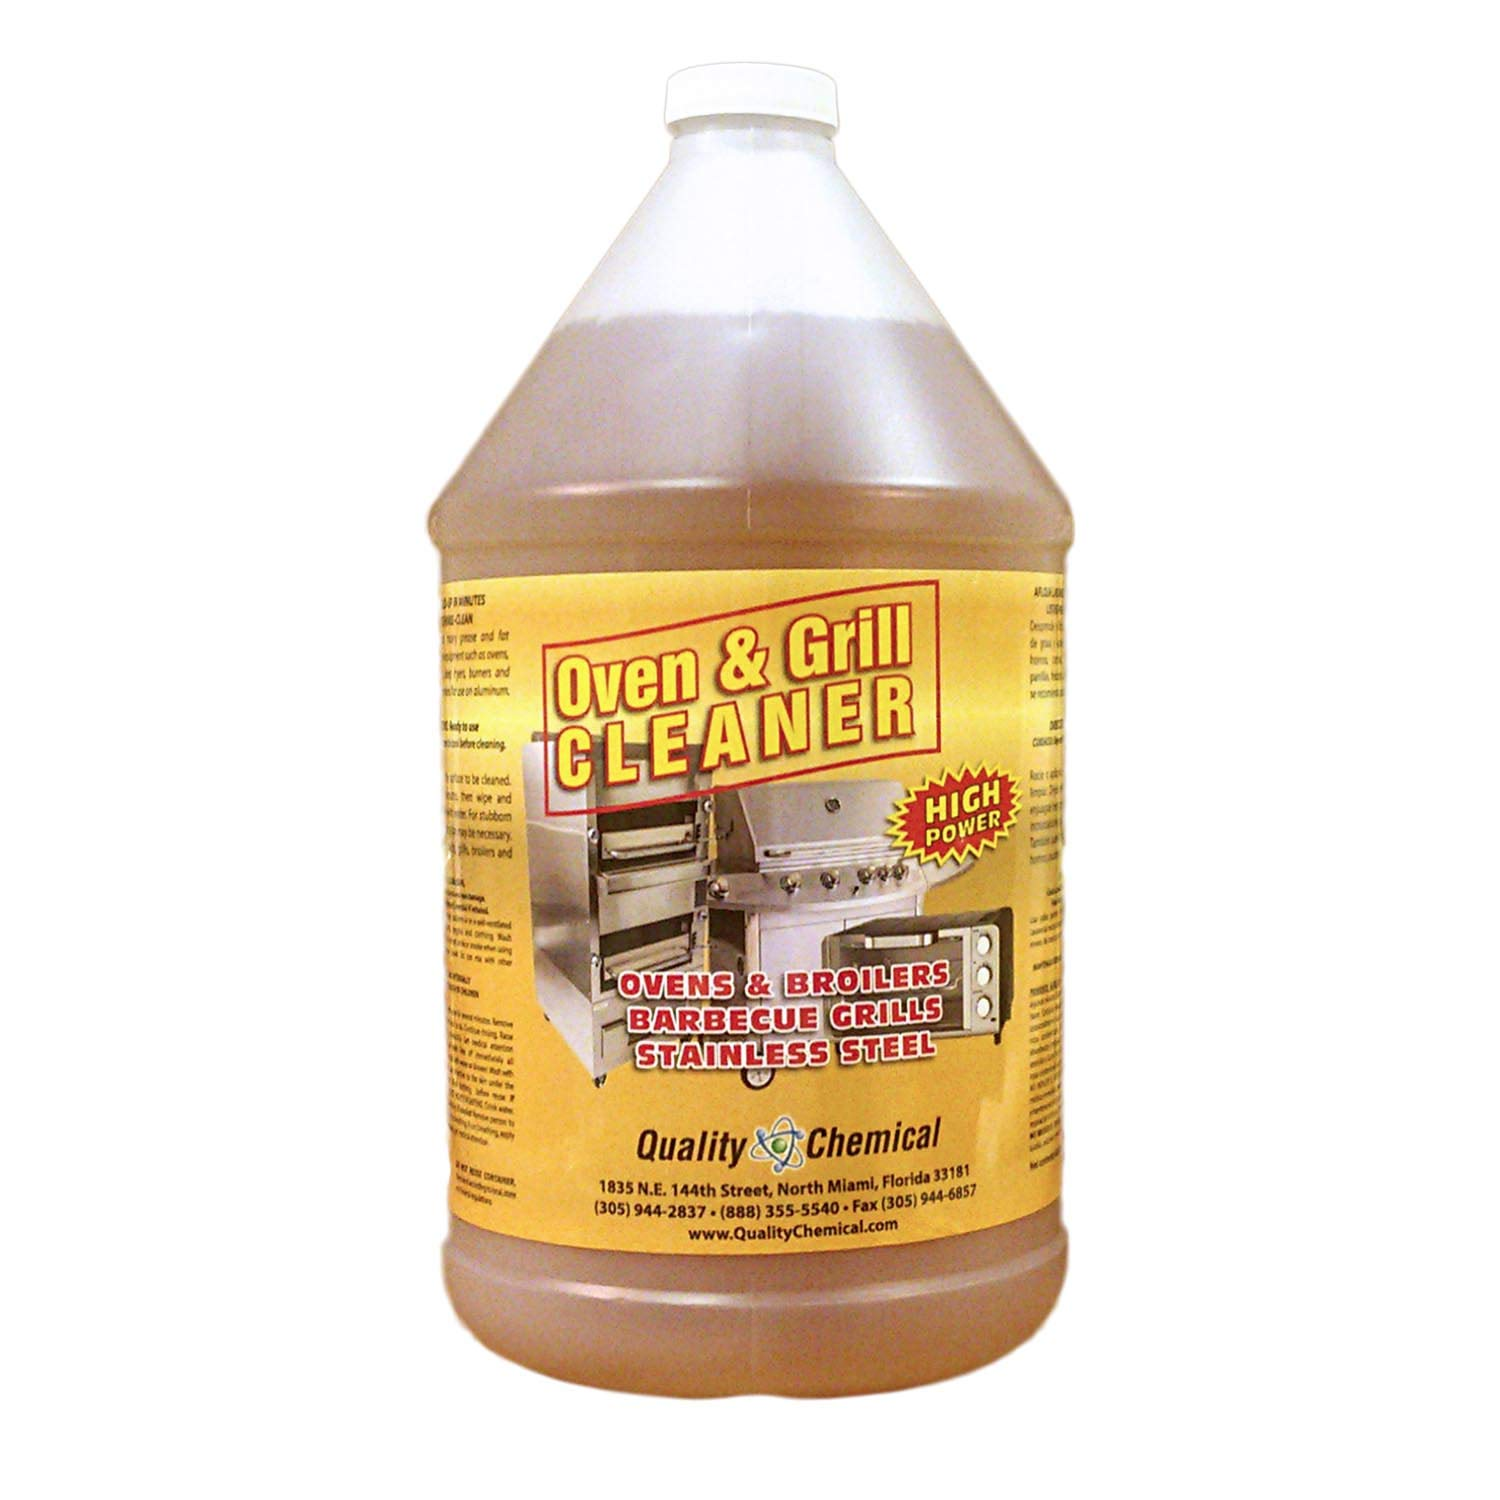 Oven & Grill Cleaner Heavy-Duty. High Power! Nothing Stronger.-1 gallon (128 oz.)